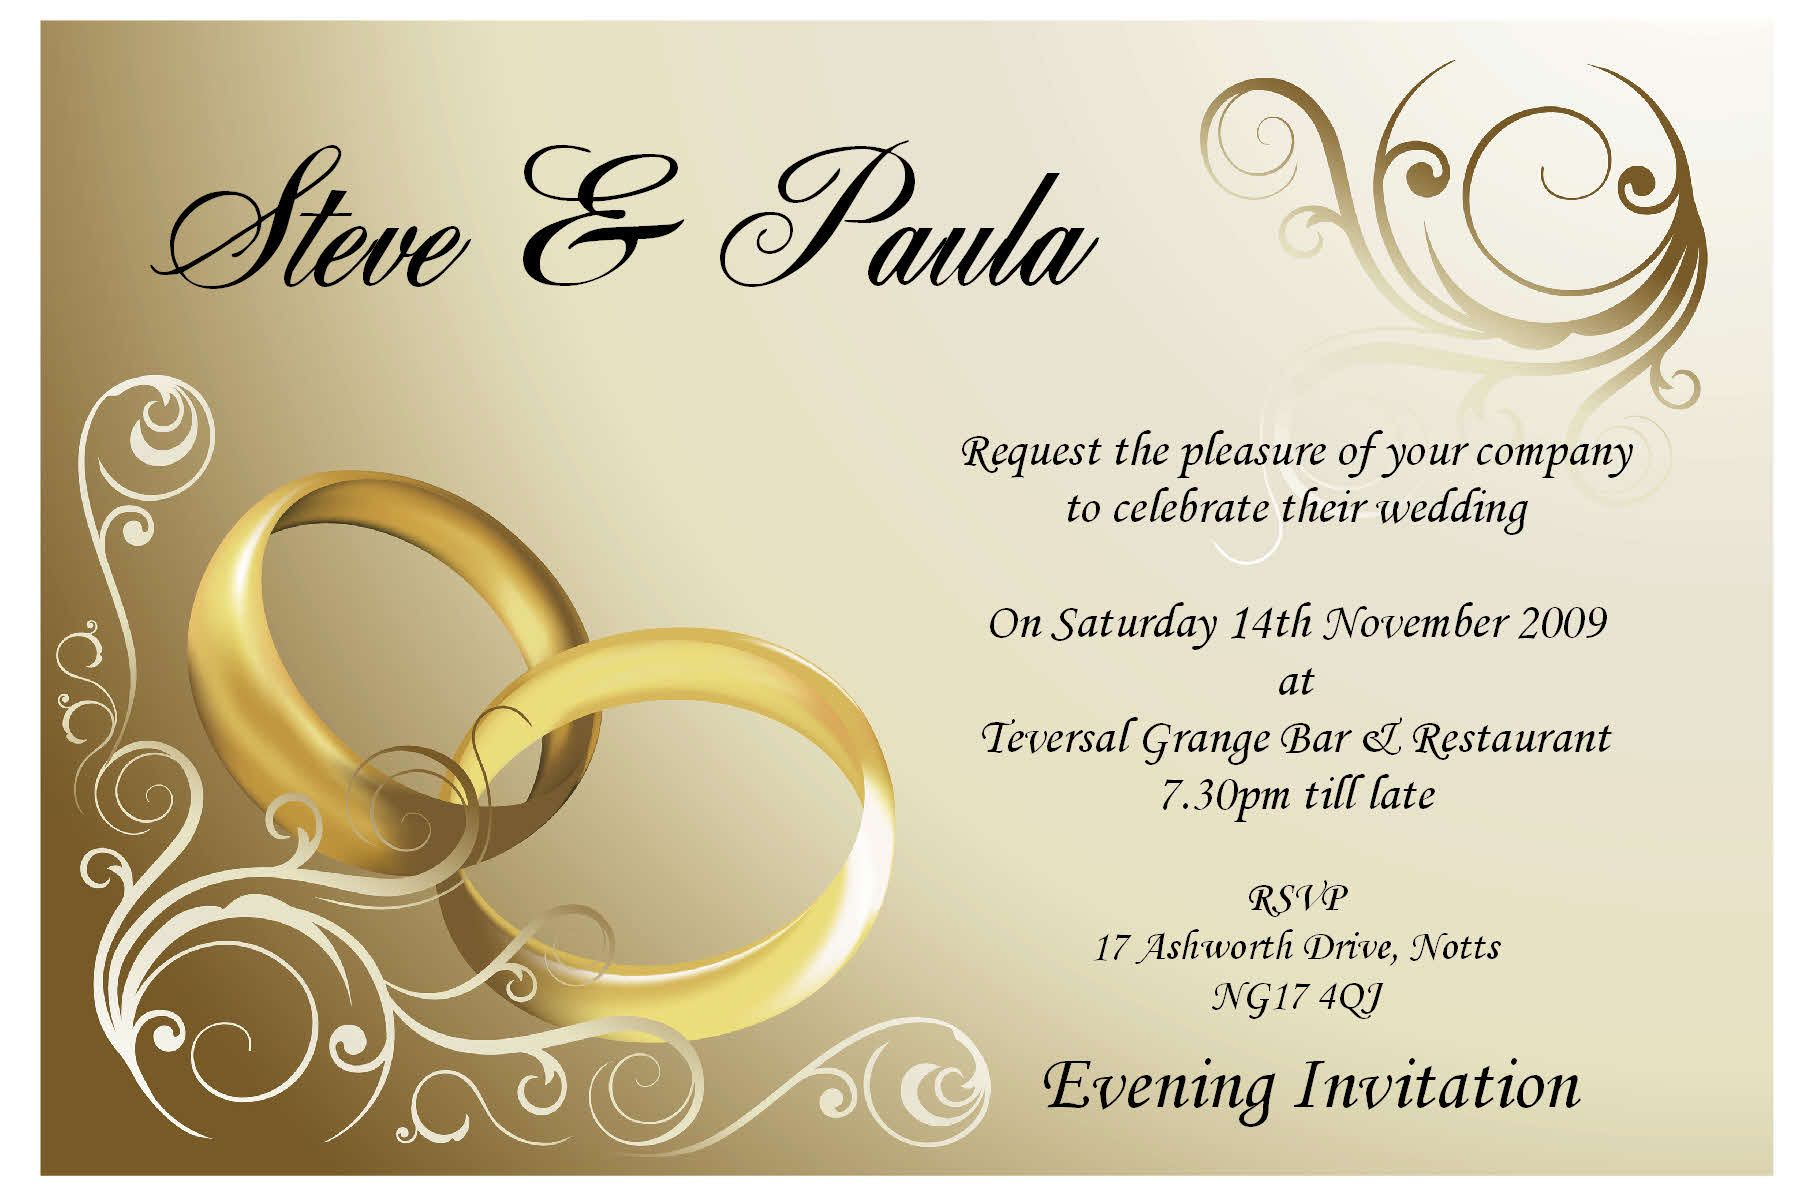 Invitationsstunning general ideas alluring online invitation maker invitationsstunning general ideas alluring online invitation maker easy on the eye and free email invitations and the eye free invitationsmarvellous free stopboris Choice Image